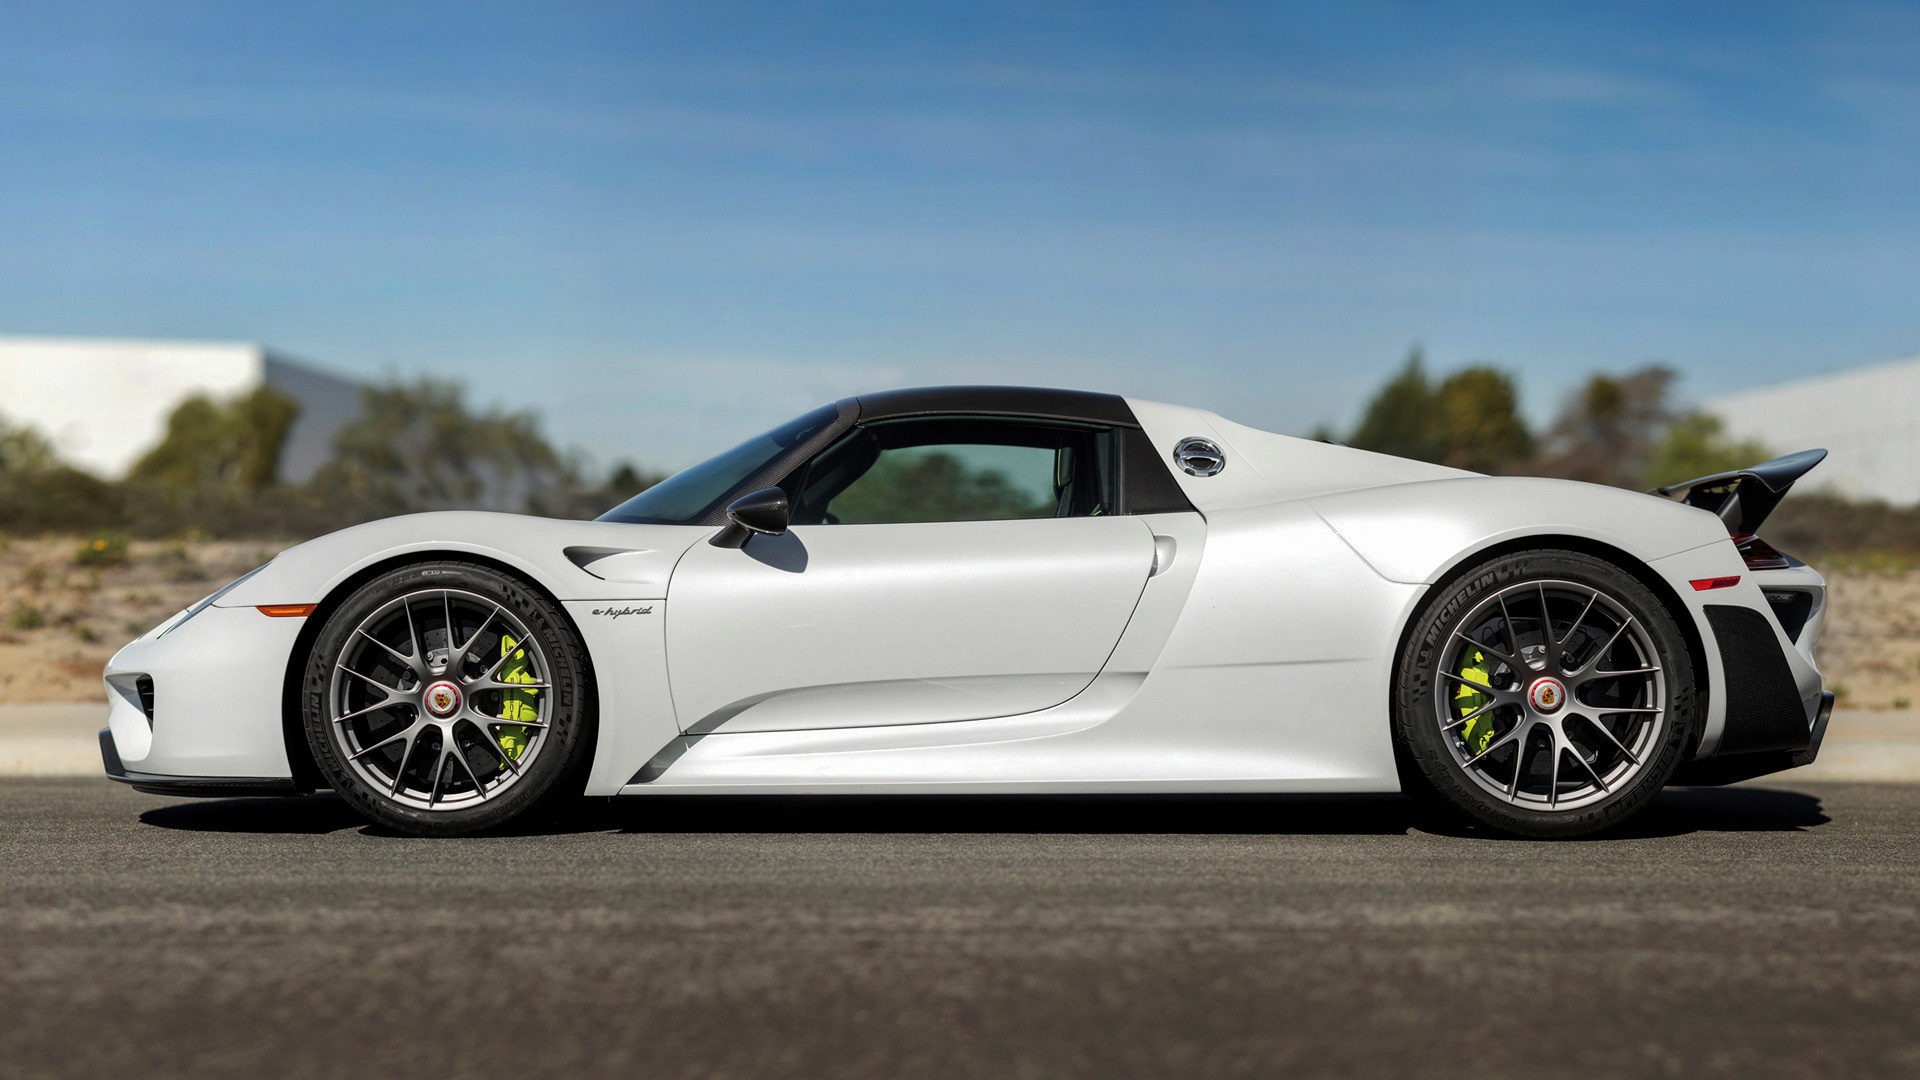 Porsche 918 Spyder Weissach Package (2014) US Wallpapers and HD Images ...